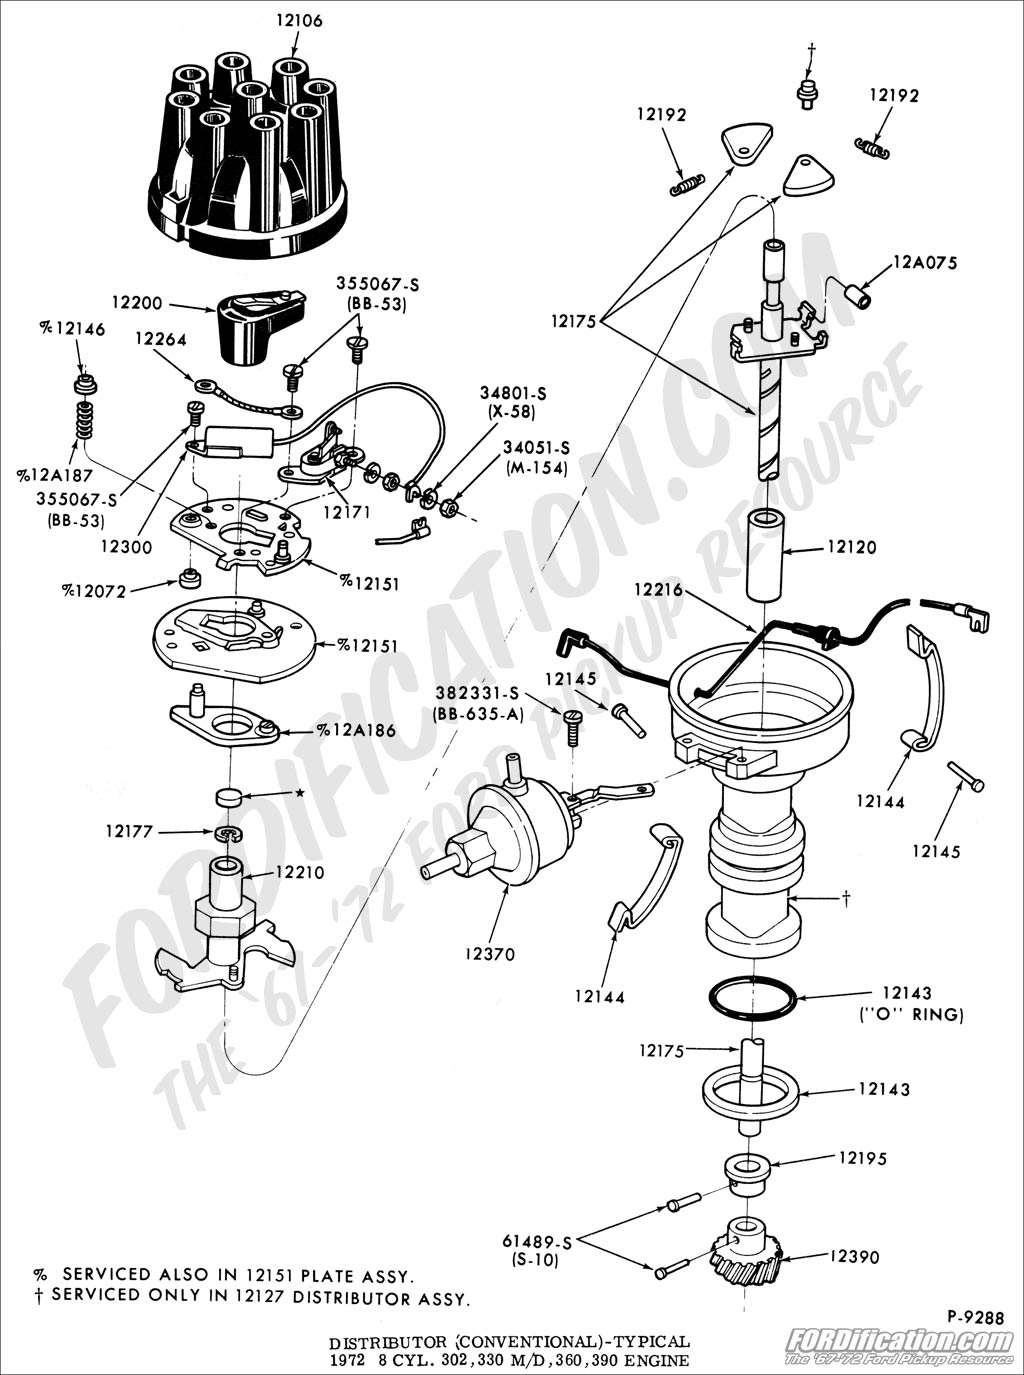 1976 Ford Maverick Wiring Diagram Trusted Diagrams 1975 Data U2022 77 Truck